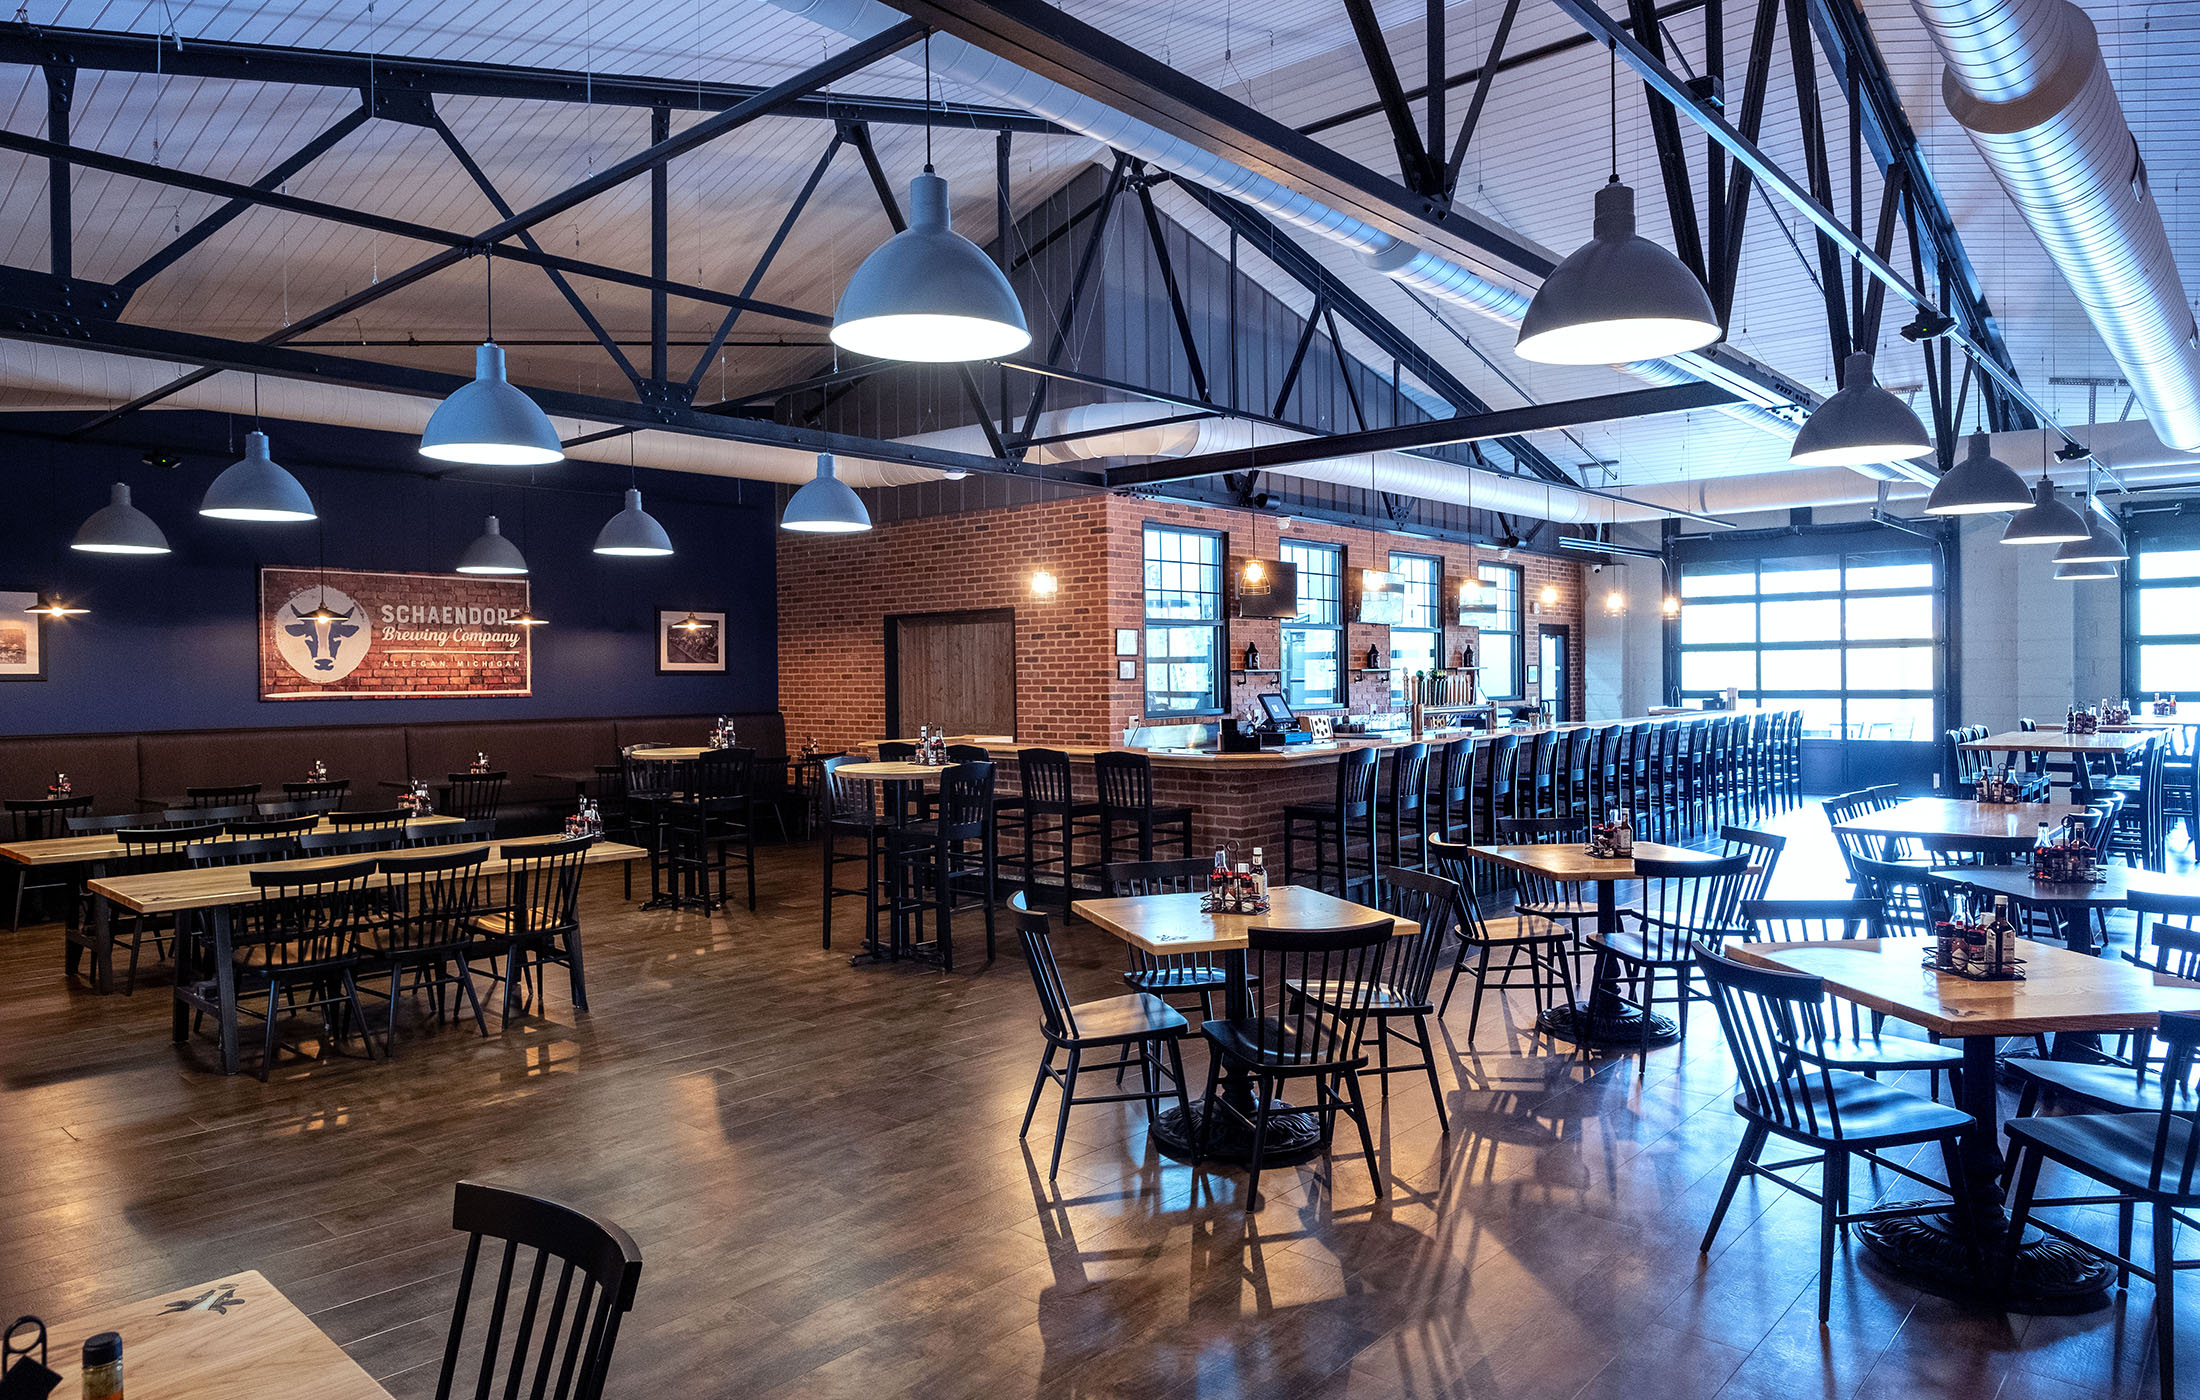 Schaendorf Brewery Seating Tables